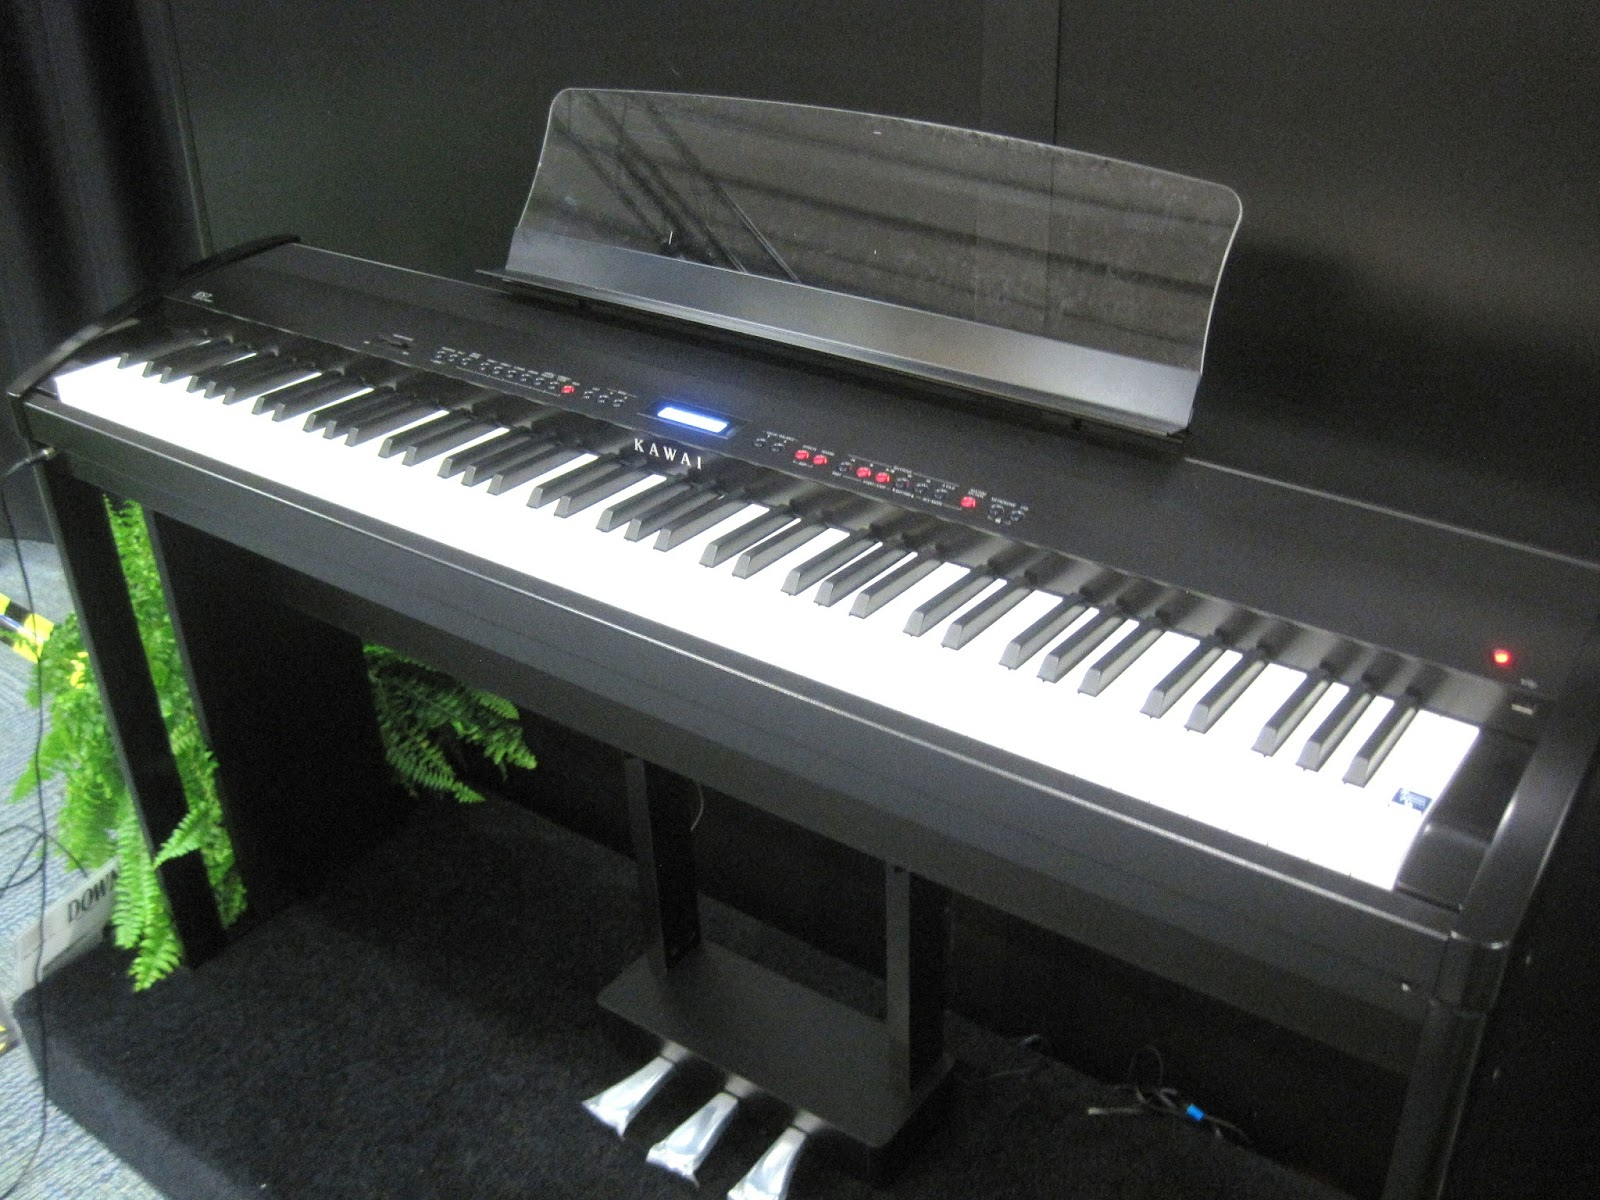 az piano reviews review yamaha p255 digital piano recommended. Black Bedroom Furniture Sets. Home Design Ideas